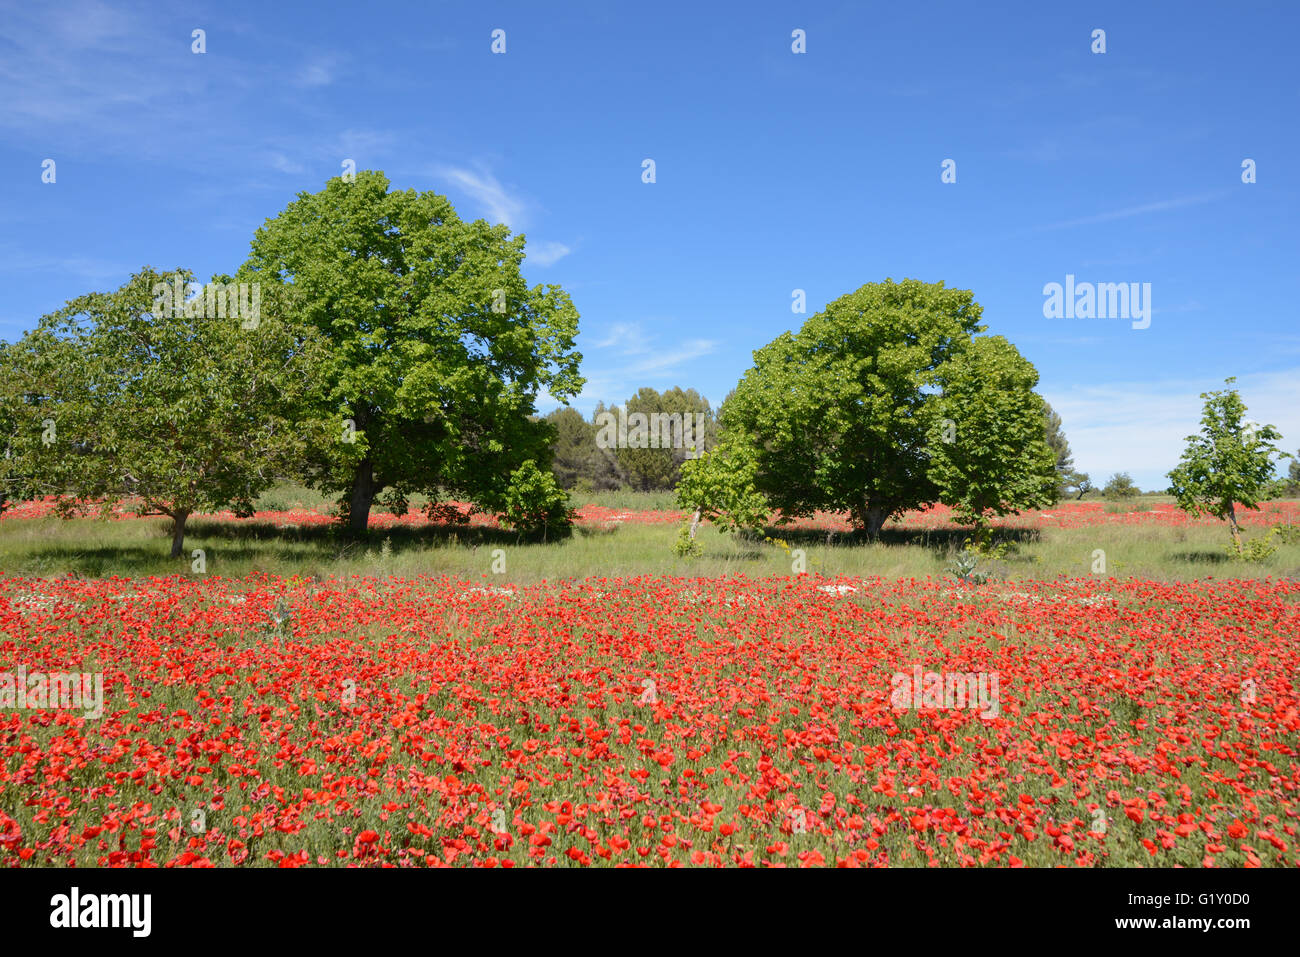 Provence, France. 20th May, 2016. Poppy Fields in Provence. Spring in Provence is brief but for a few weeks in May - Stock Image